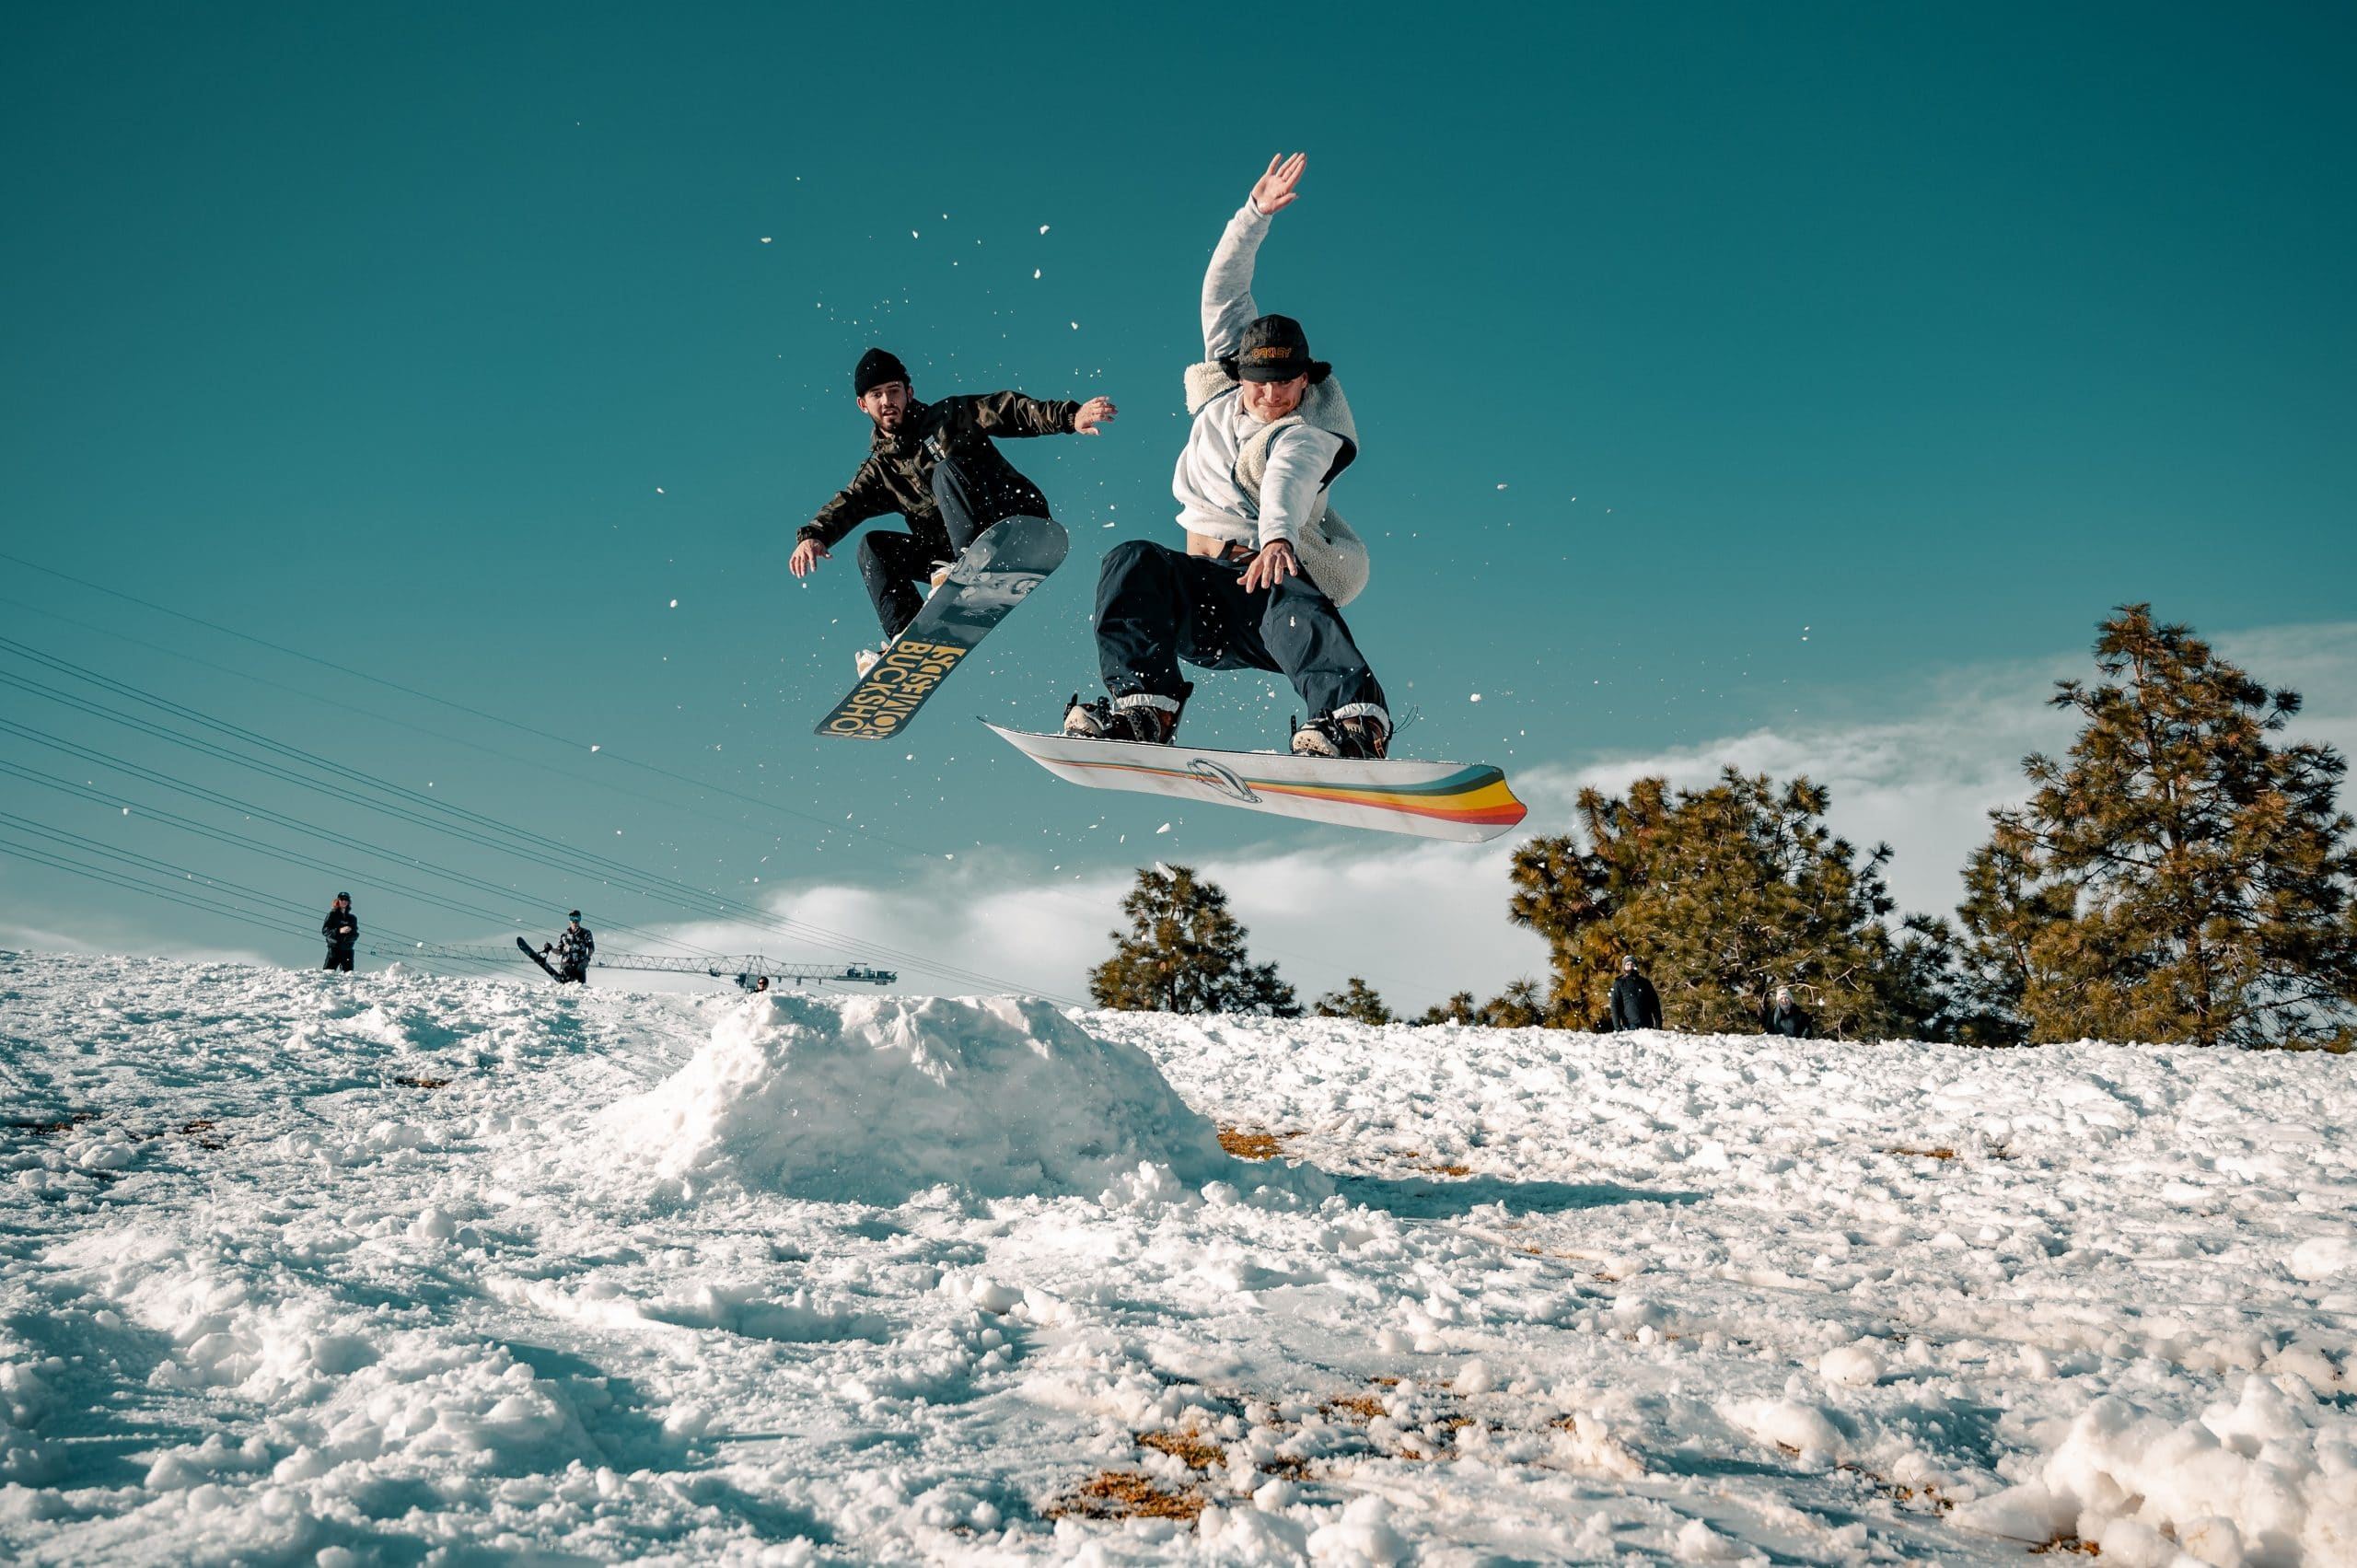 Snow boarding photography - How to do Sports Photography